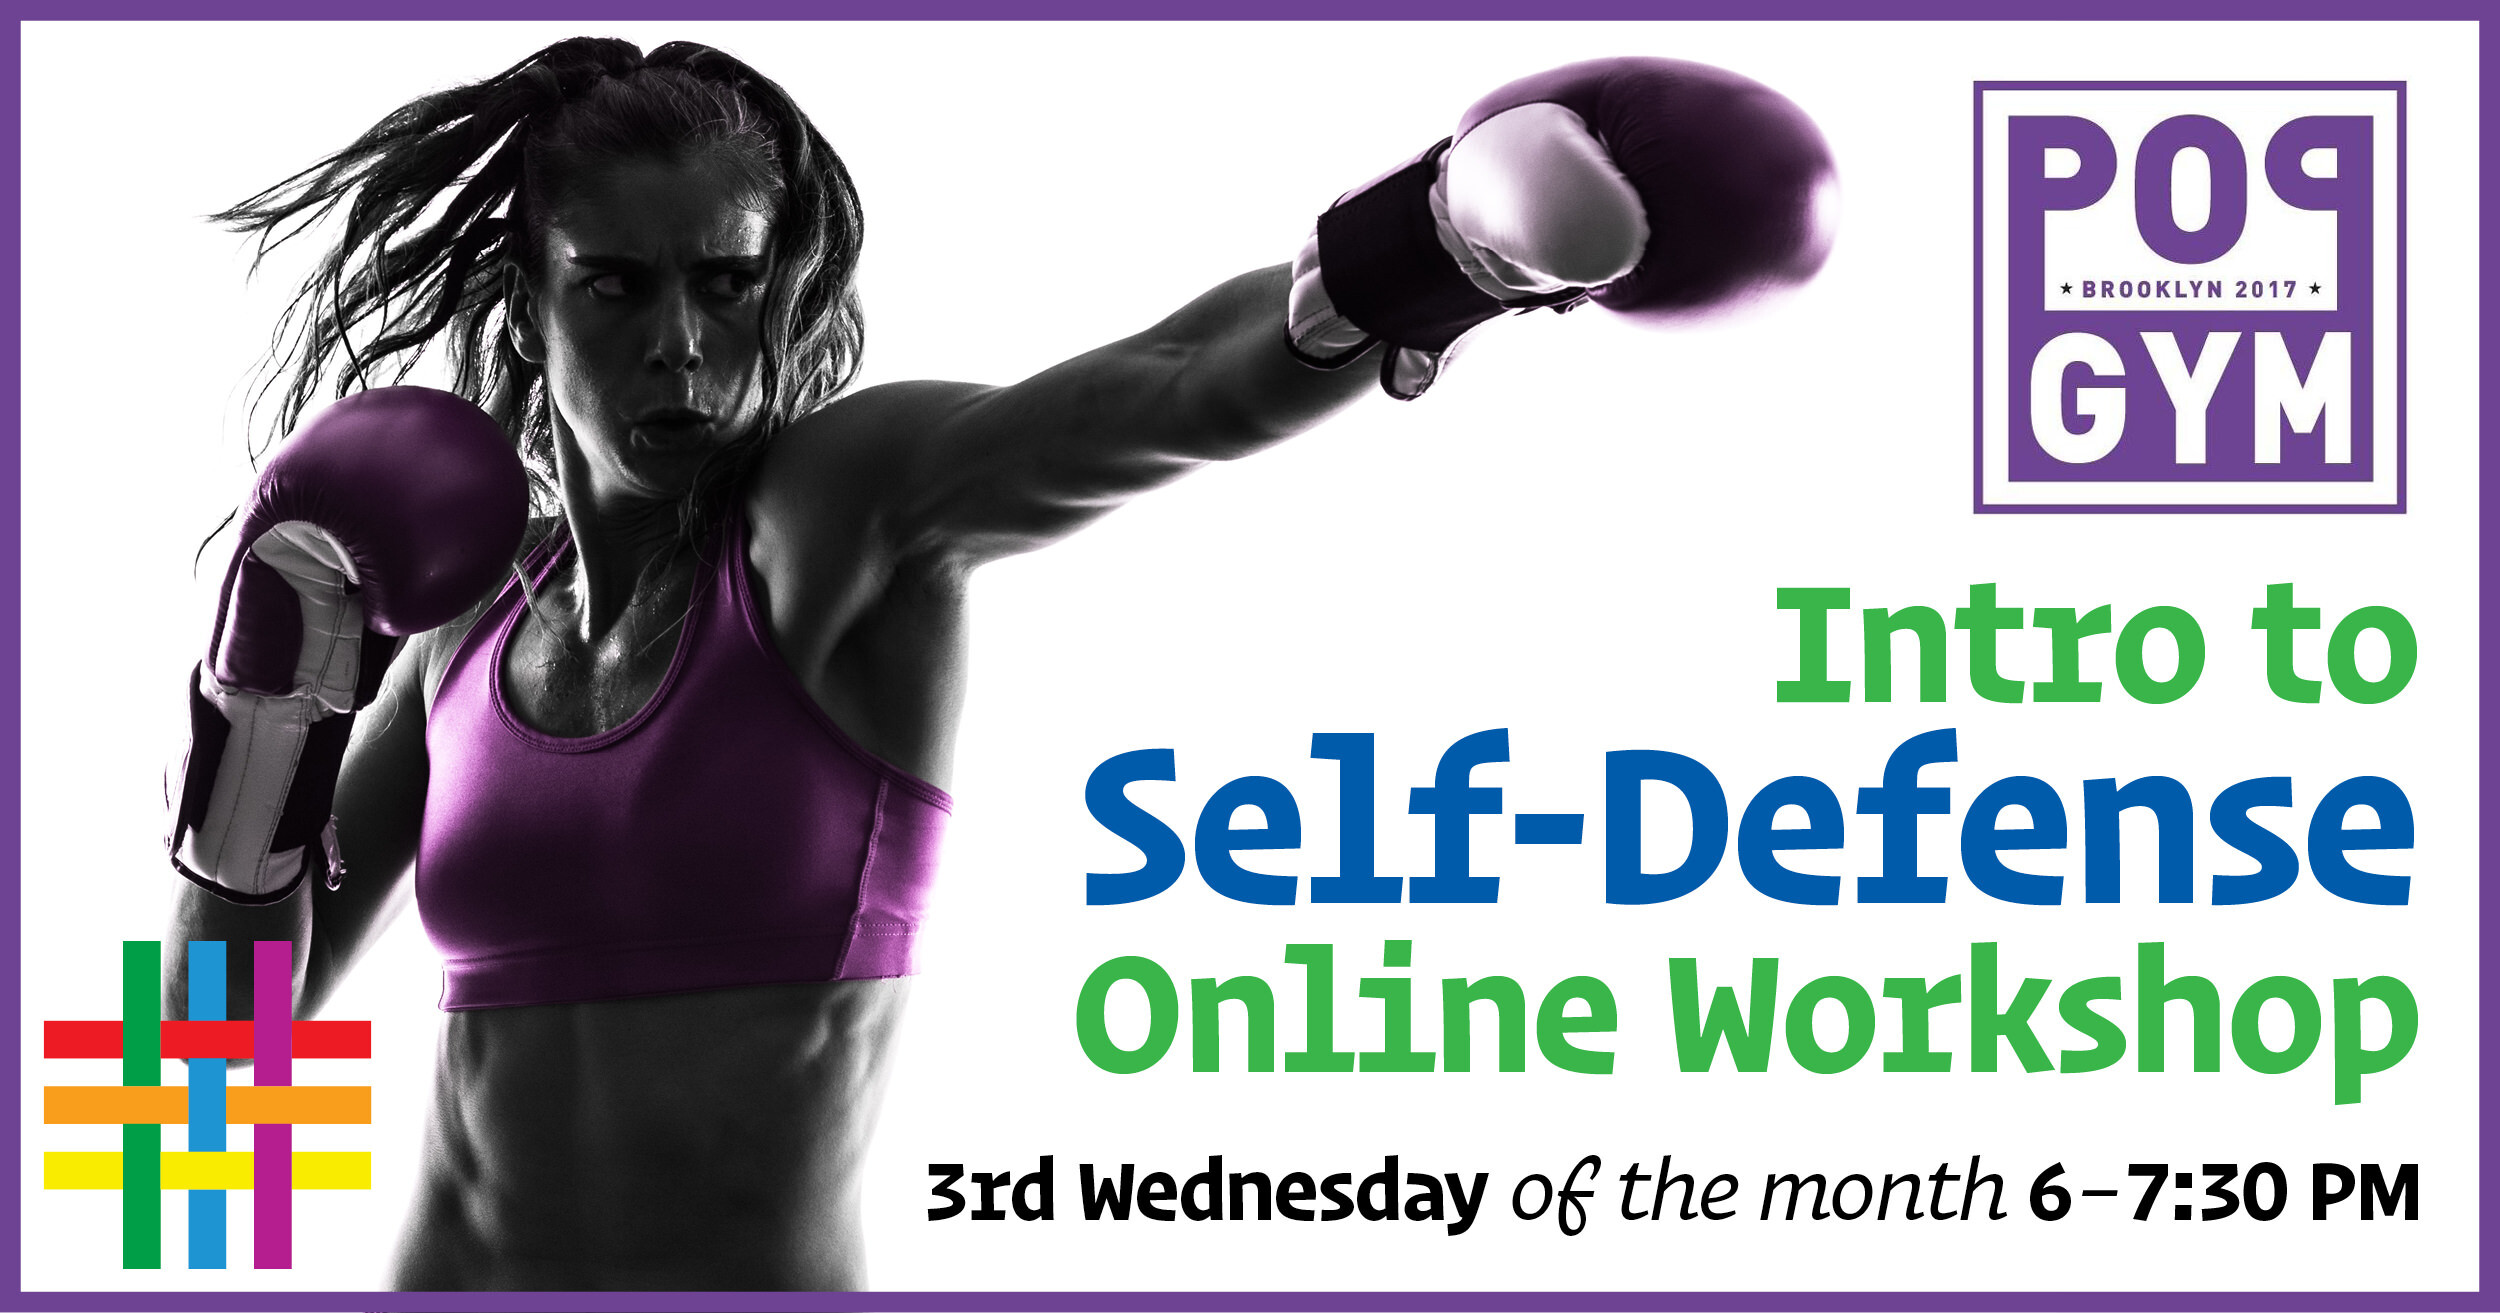 Into to Self-Defense Online Workshop at Brooklyn Community Pride Center